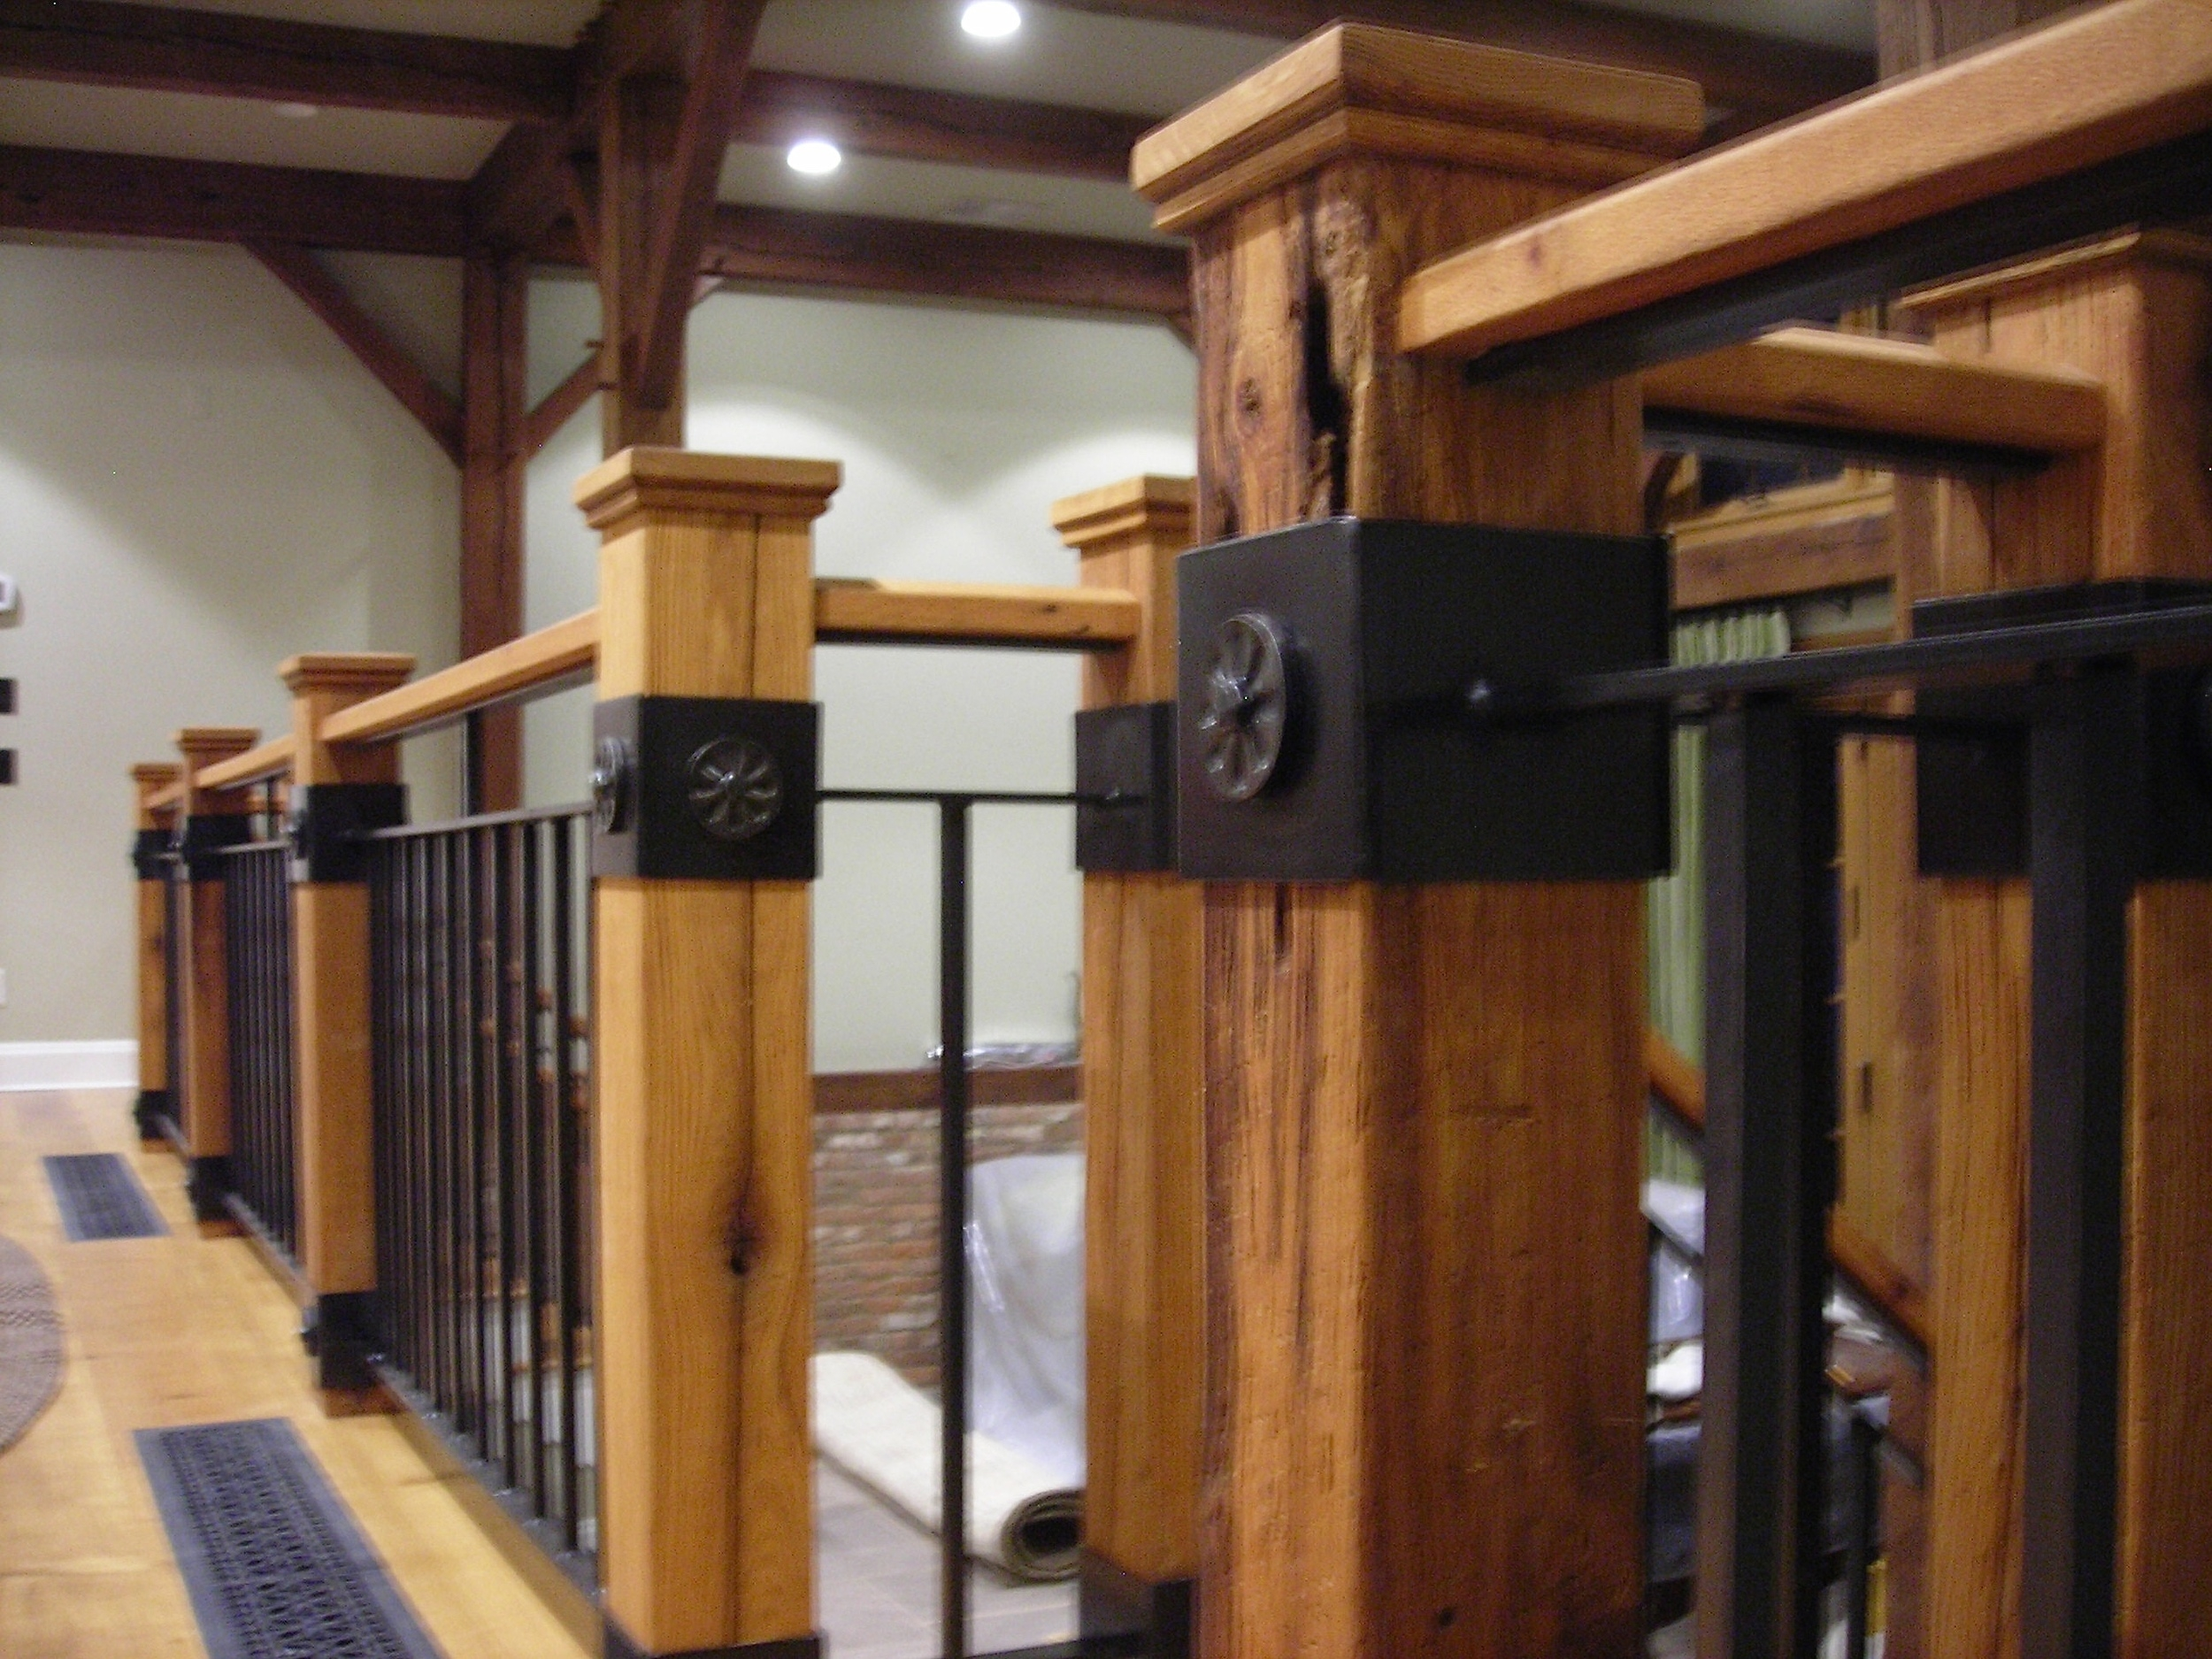 Interior Railings — Amaral Industries Inc | Wood And Metal Handrail | Interior | Iron Railing | Architectural Modern Wood Stair | Stainless Steel | Traditional